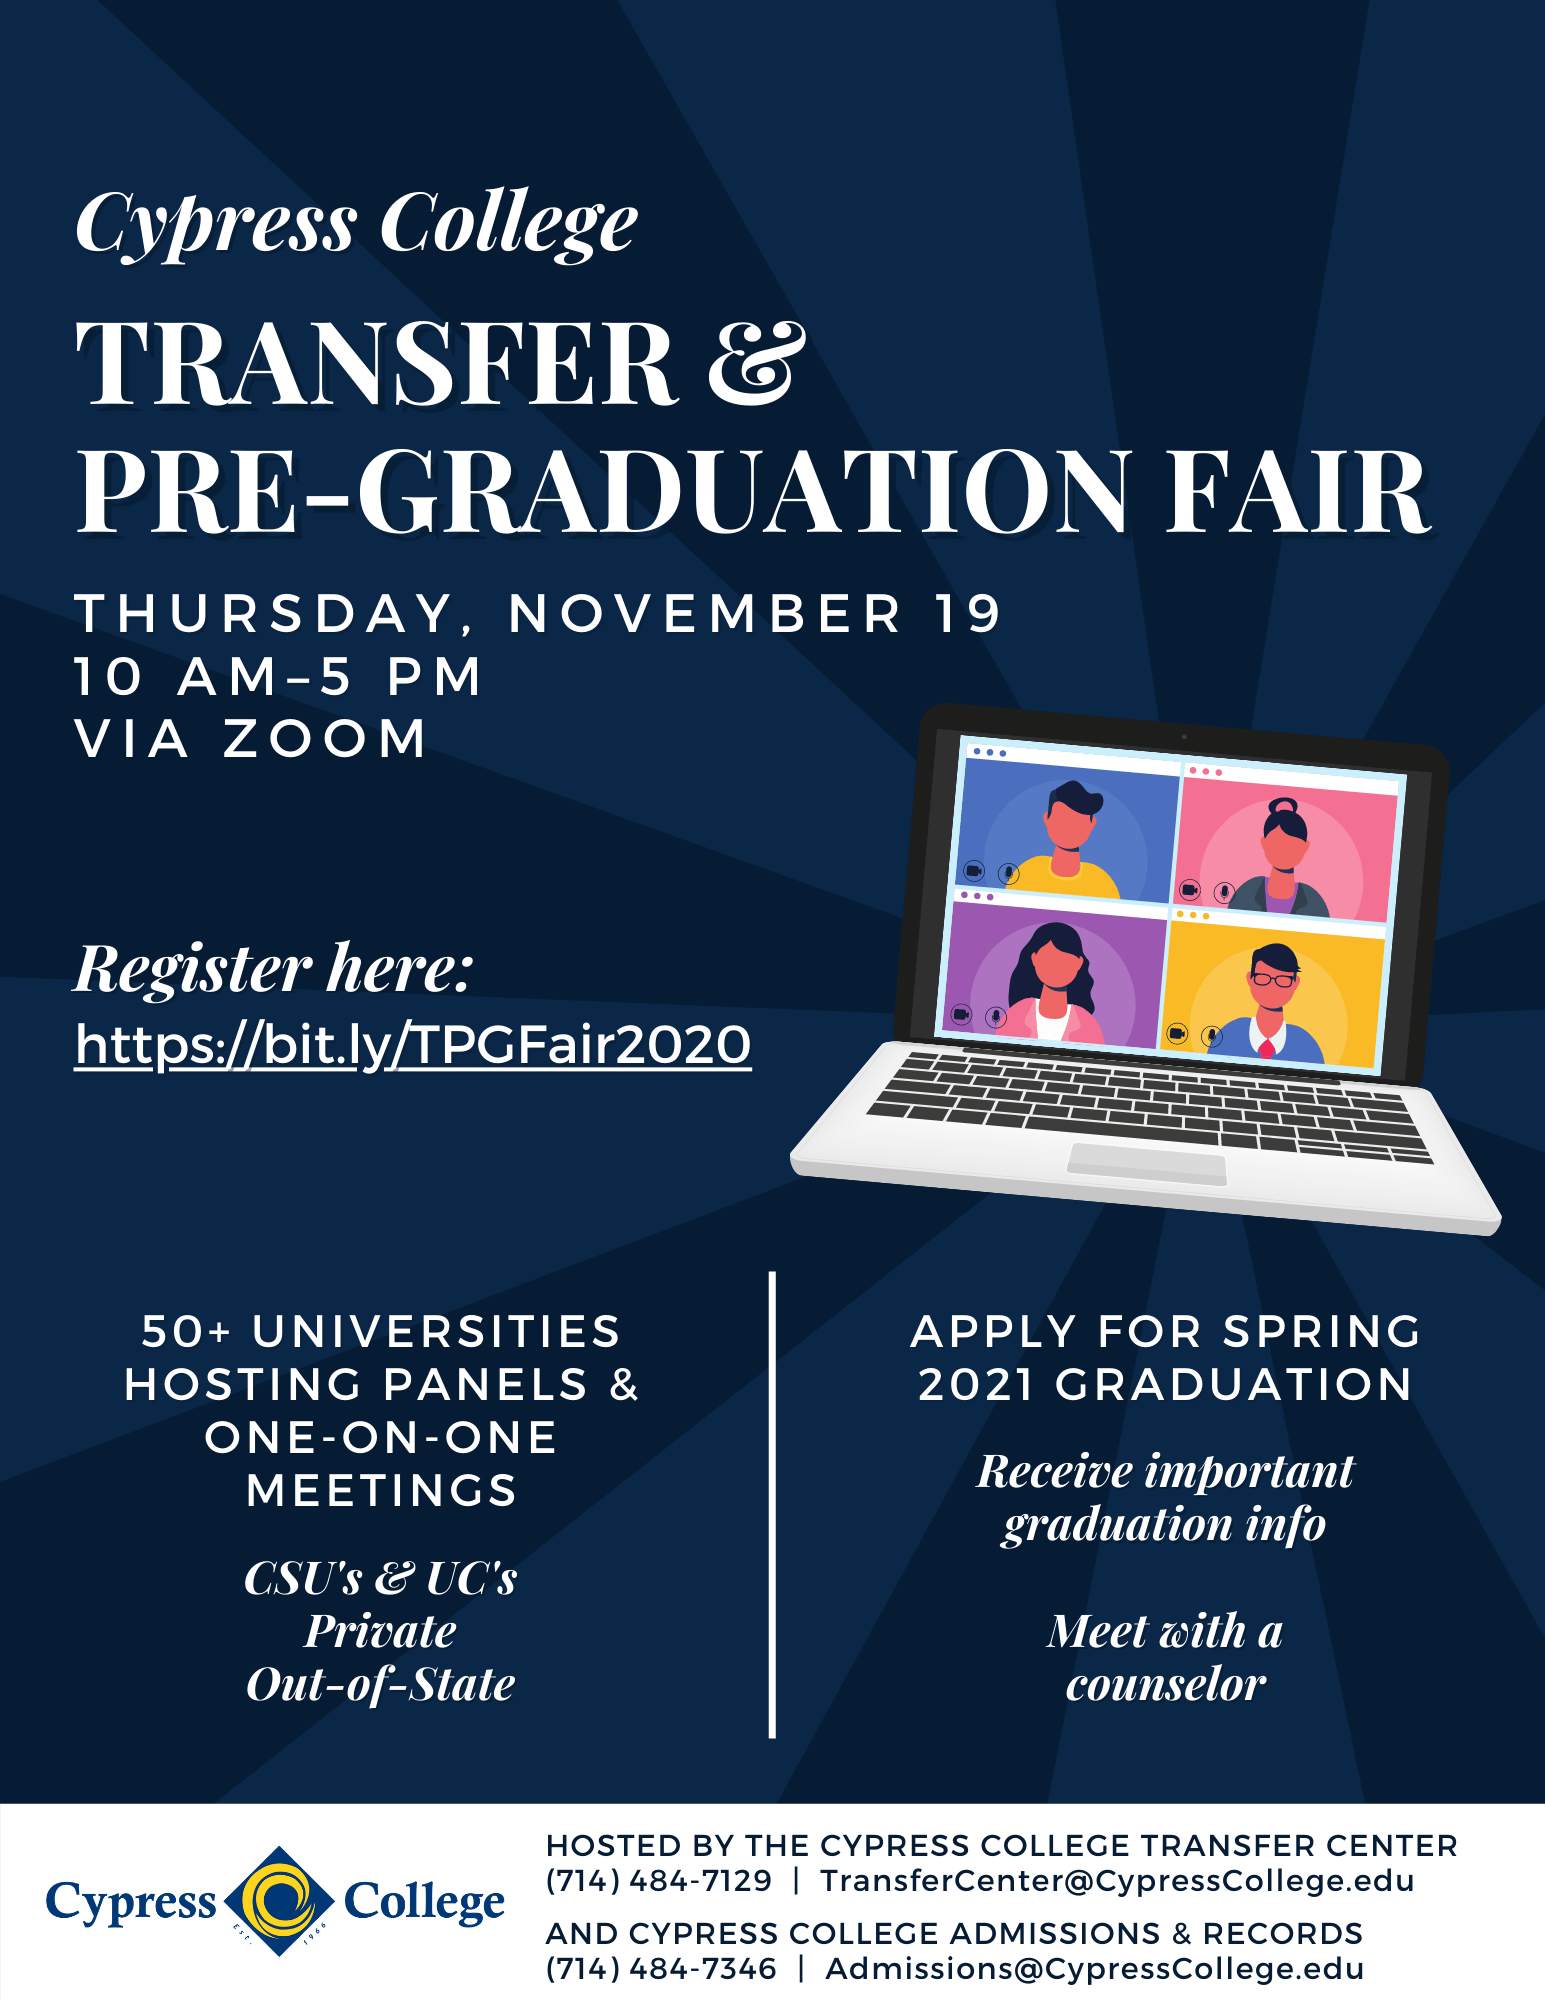 Transfer & Pre-Graduation Fair Flyer